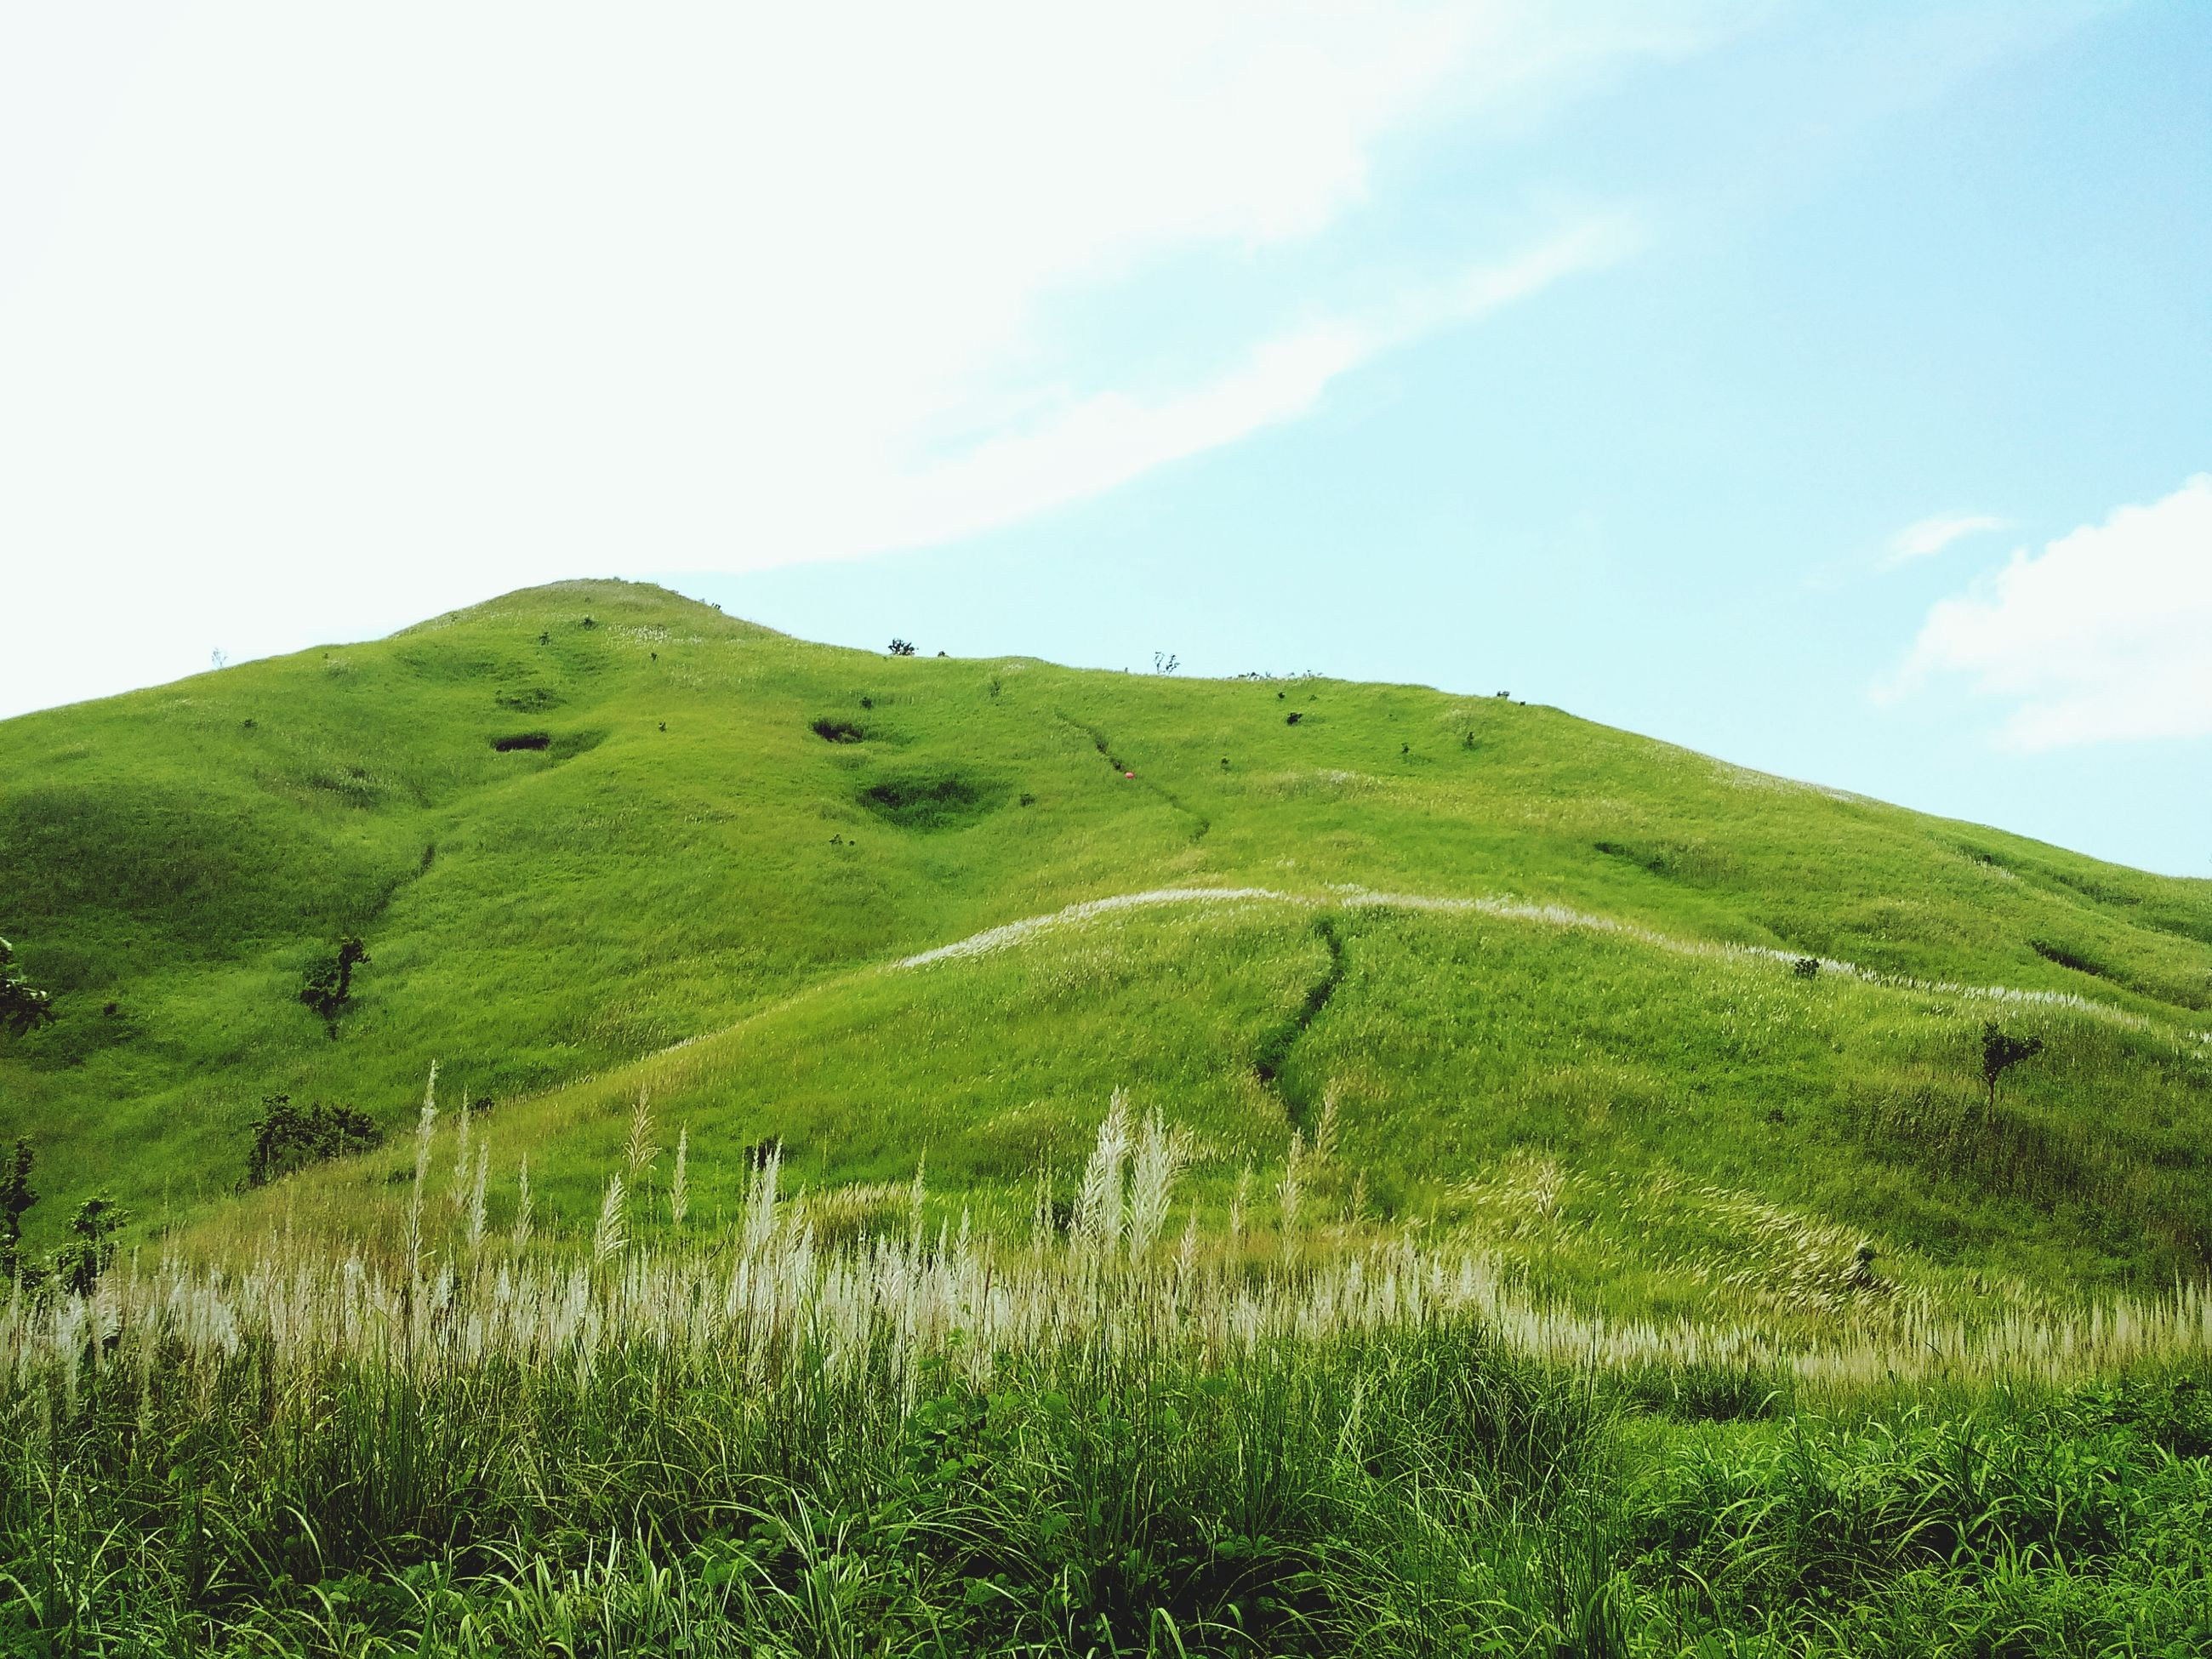 grass, landscape, tranquil scene, sky, tranquility, field, green color, scenics, grassy, beauty in nature, nature, growth, mountain, plant, non-urban scene, hill, green, remote, day, blue